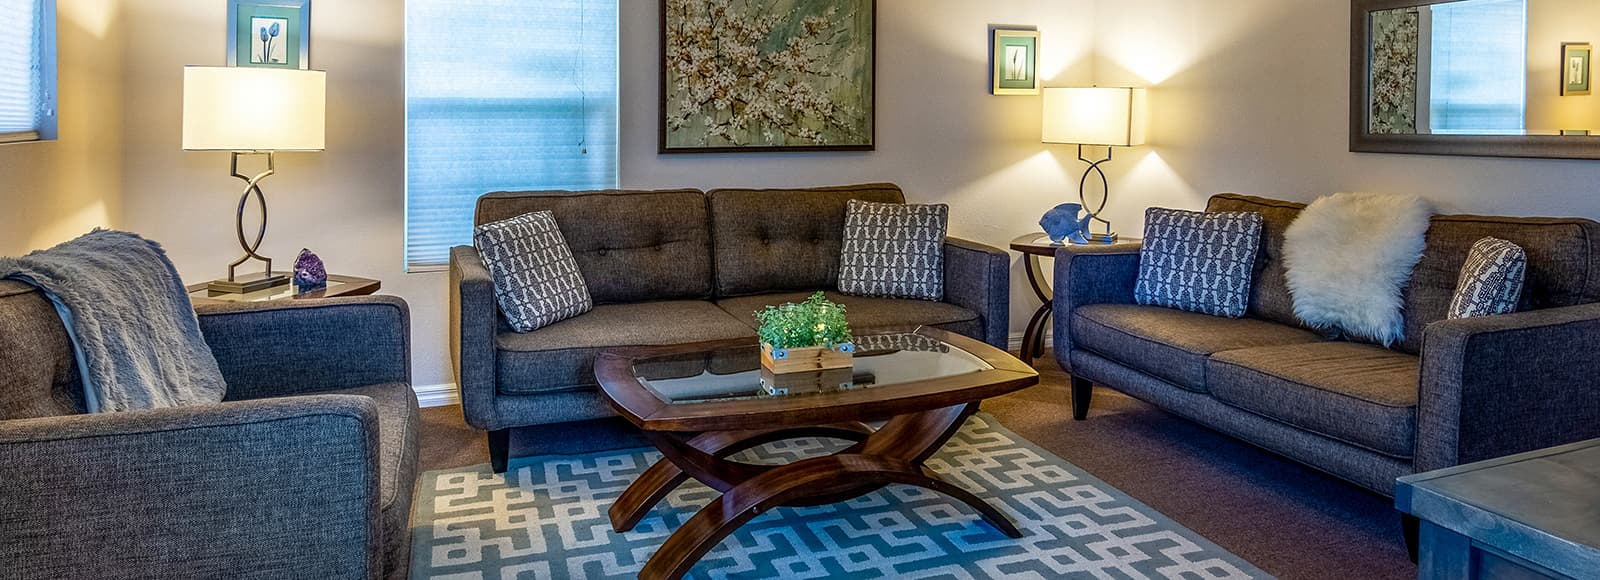 Passages Sober Living Homes